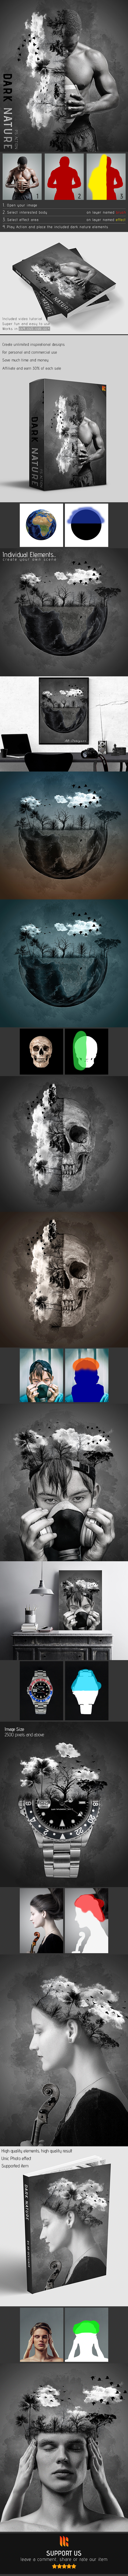 Dark Nature Photoshop Action - Photo Effects Actions